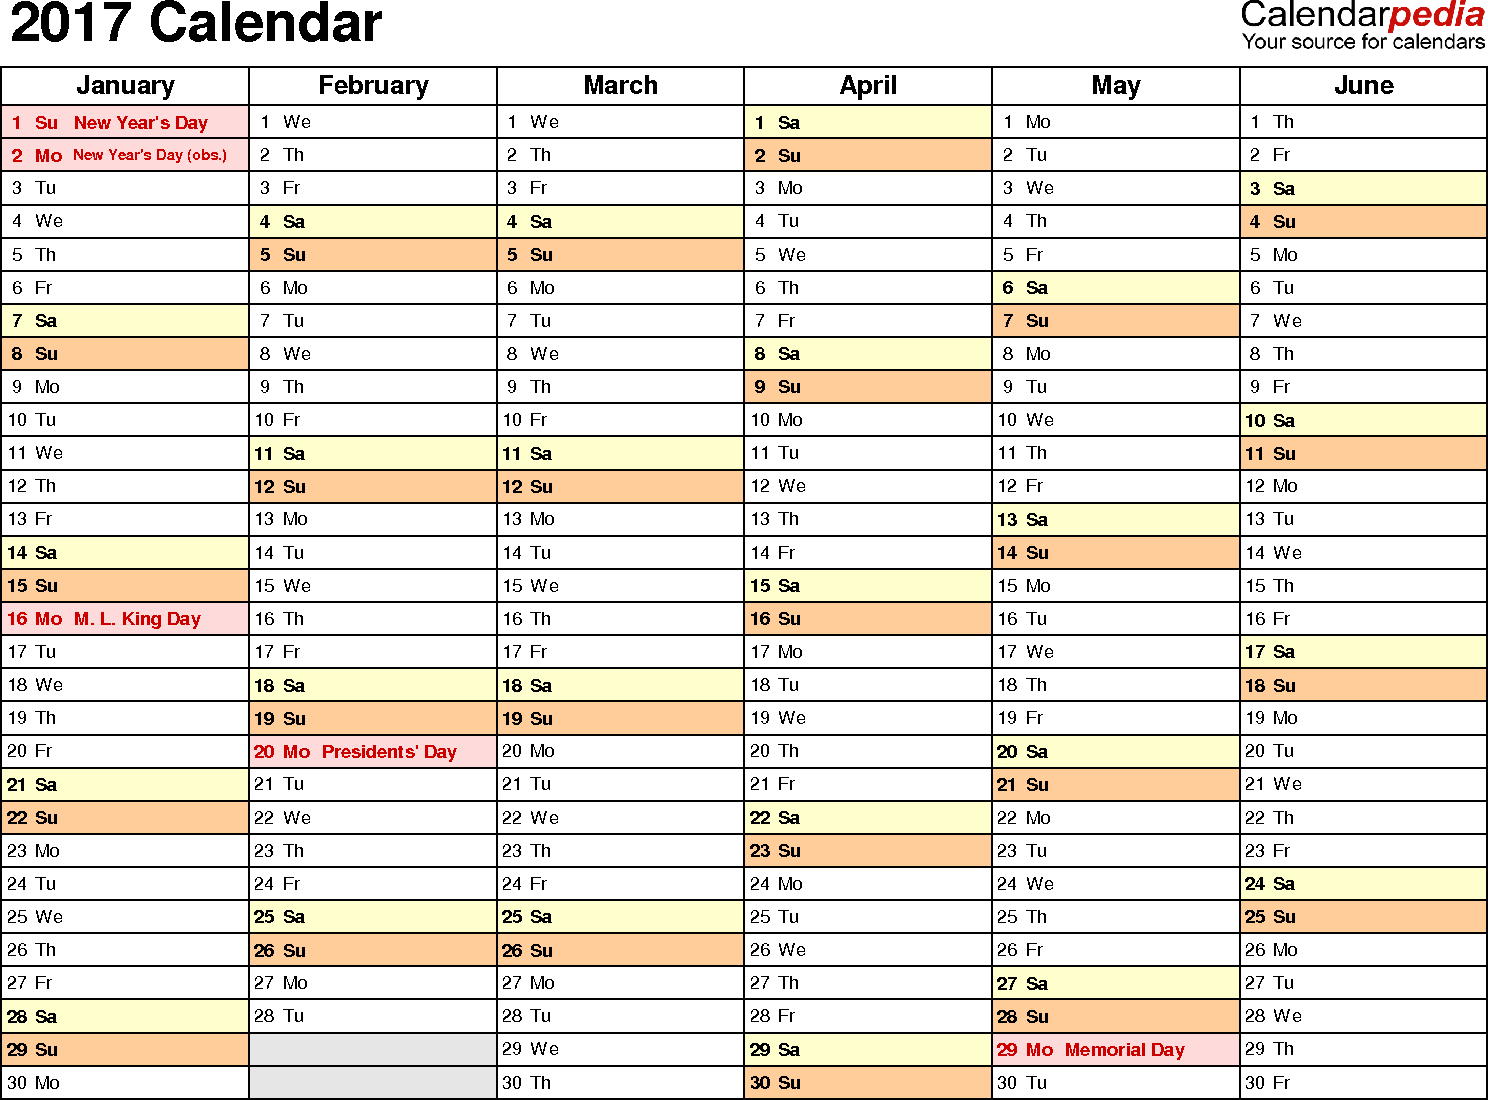 Ediblewildsus  Terrific  Calendar  Download  Free Printable Excel Templates Xls With Marvelous Template   Calendar For Excel Months Horizontally  Pages Landscape Orientation With Archaic Excel Quick Keys Also How To Make A Header In Excel In Addition Sharpe Ratio Excel And Excel Convert String To Number As Well As How To Select Column In Excel Additionally Java Excel From Calendarpediacom With Ediblewildsus  Marvelous  Calendar  Download  Free Printable Excel Templates Xls With Archaic Template   Calendar For Excel Months Horizontally  Pages Landscape Orientation And Terrific Excel Quick Keys Also How To Make A Header In Excel In Addition Sharpe Ratio Excel From Calendarpediacom